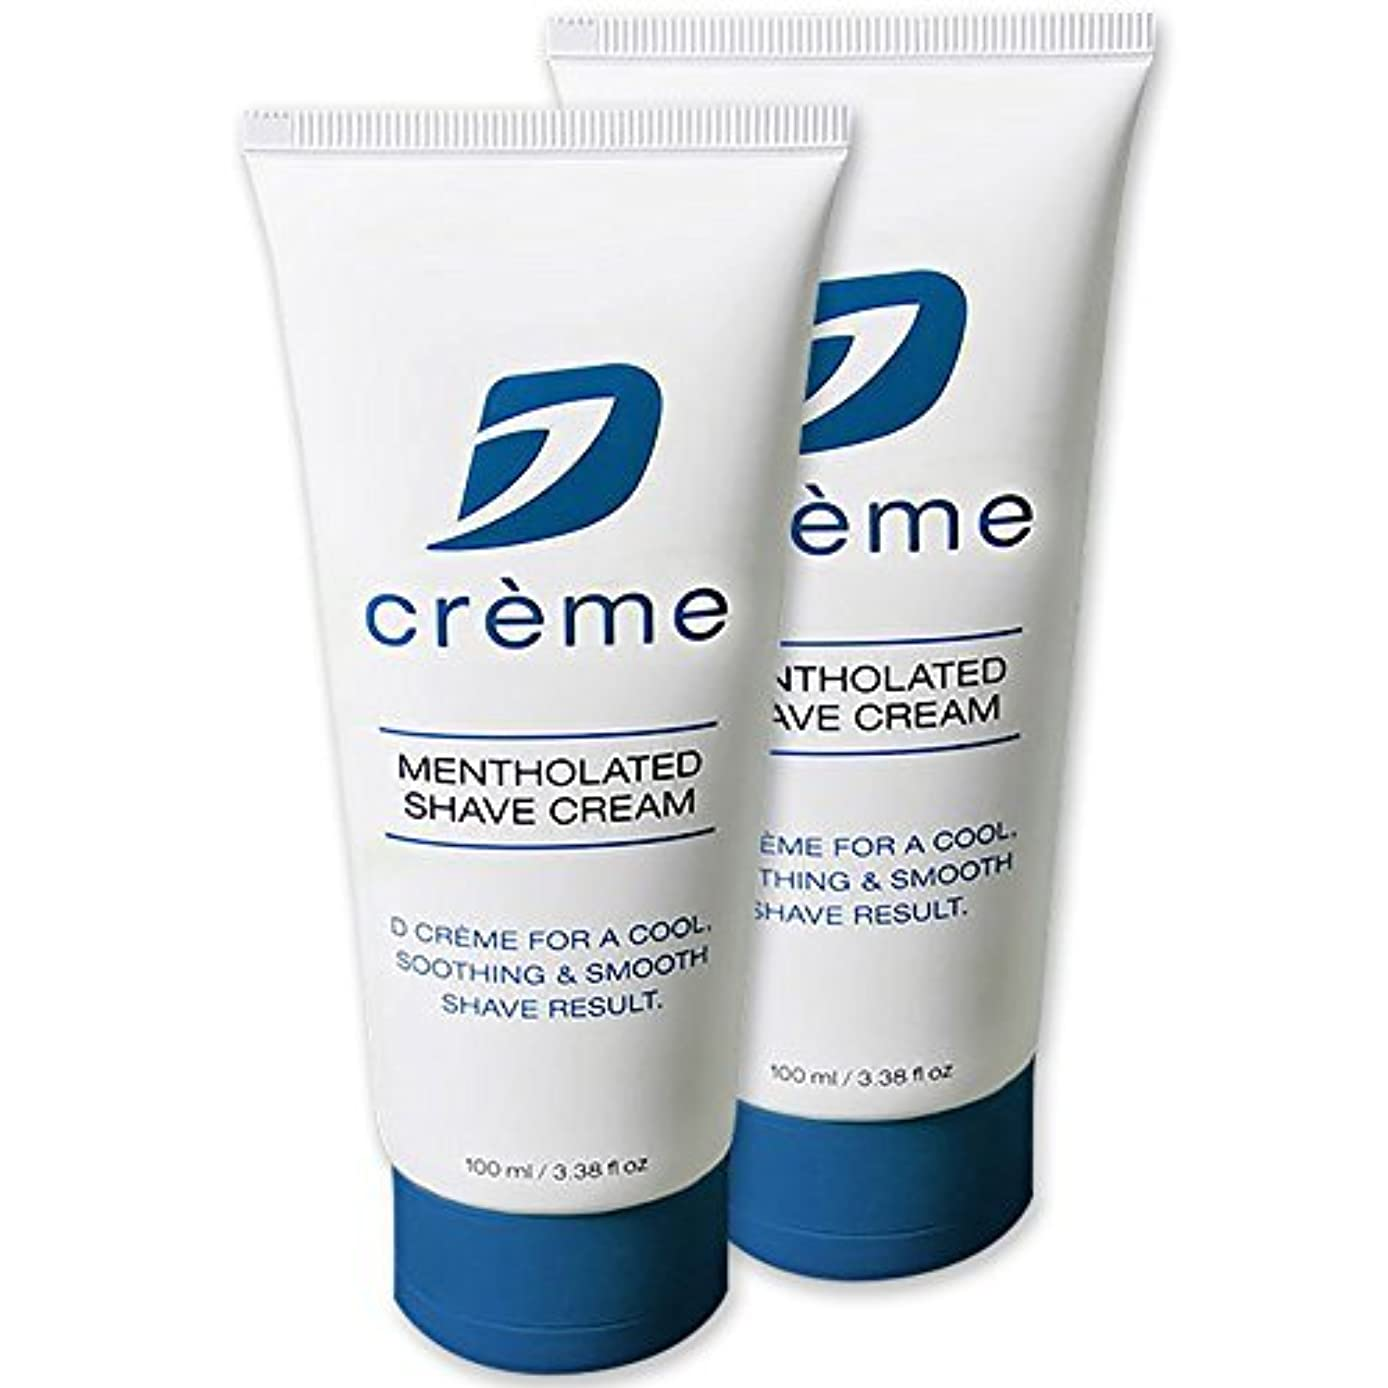 信じられない刈るメンバーDorco D Cr?me Mentholated Shaving Cream - For a Smooth and Soothing Shave (2 Pack) [並行輸入品]